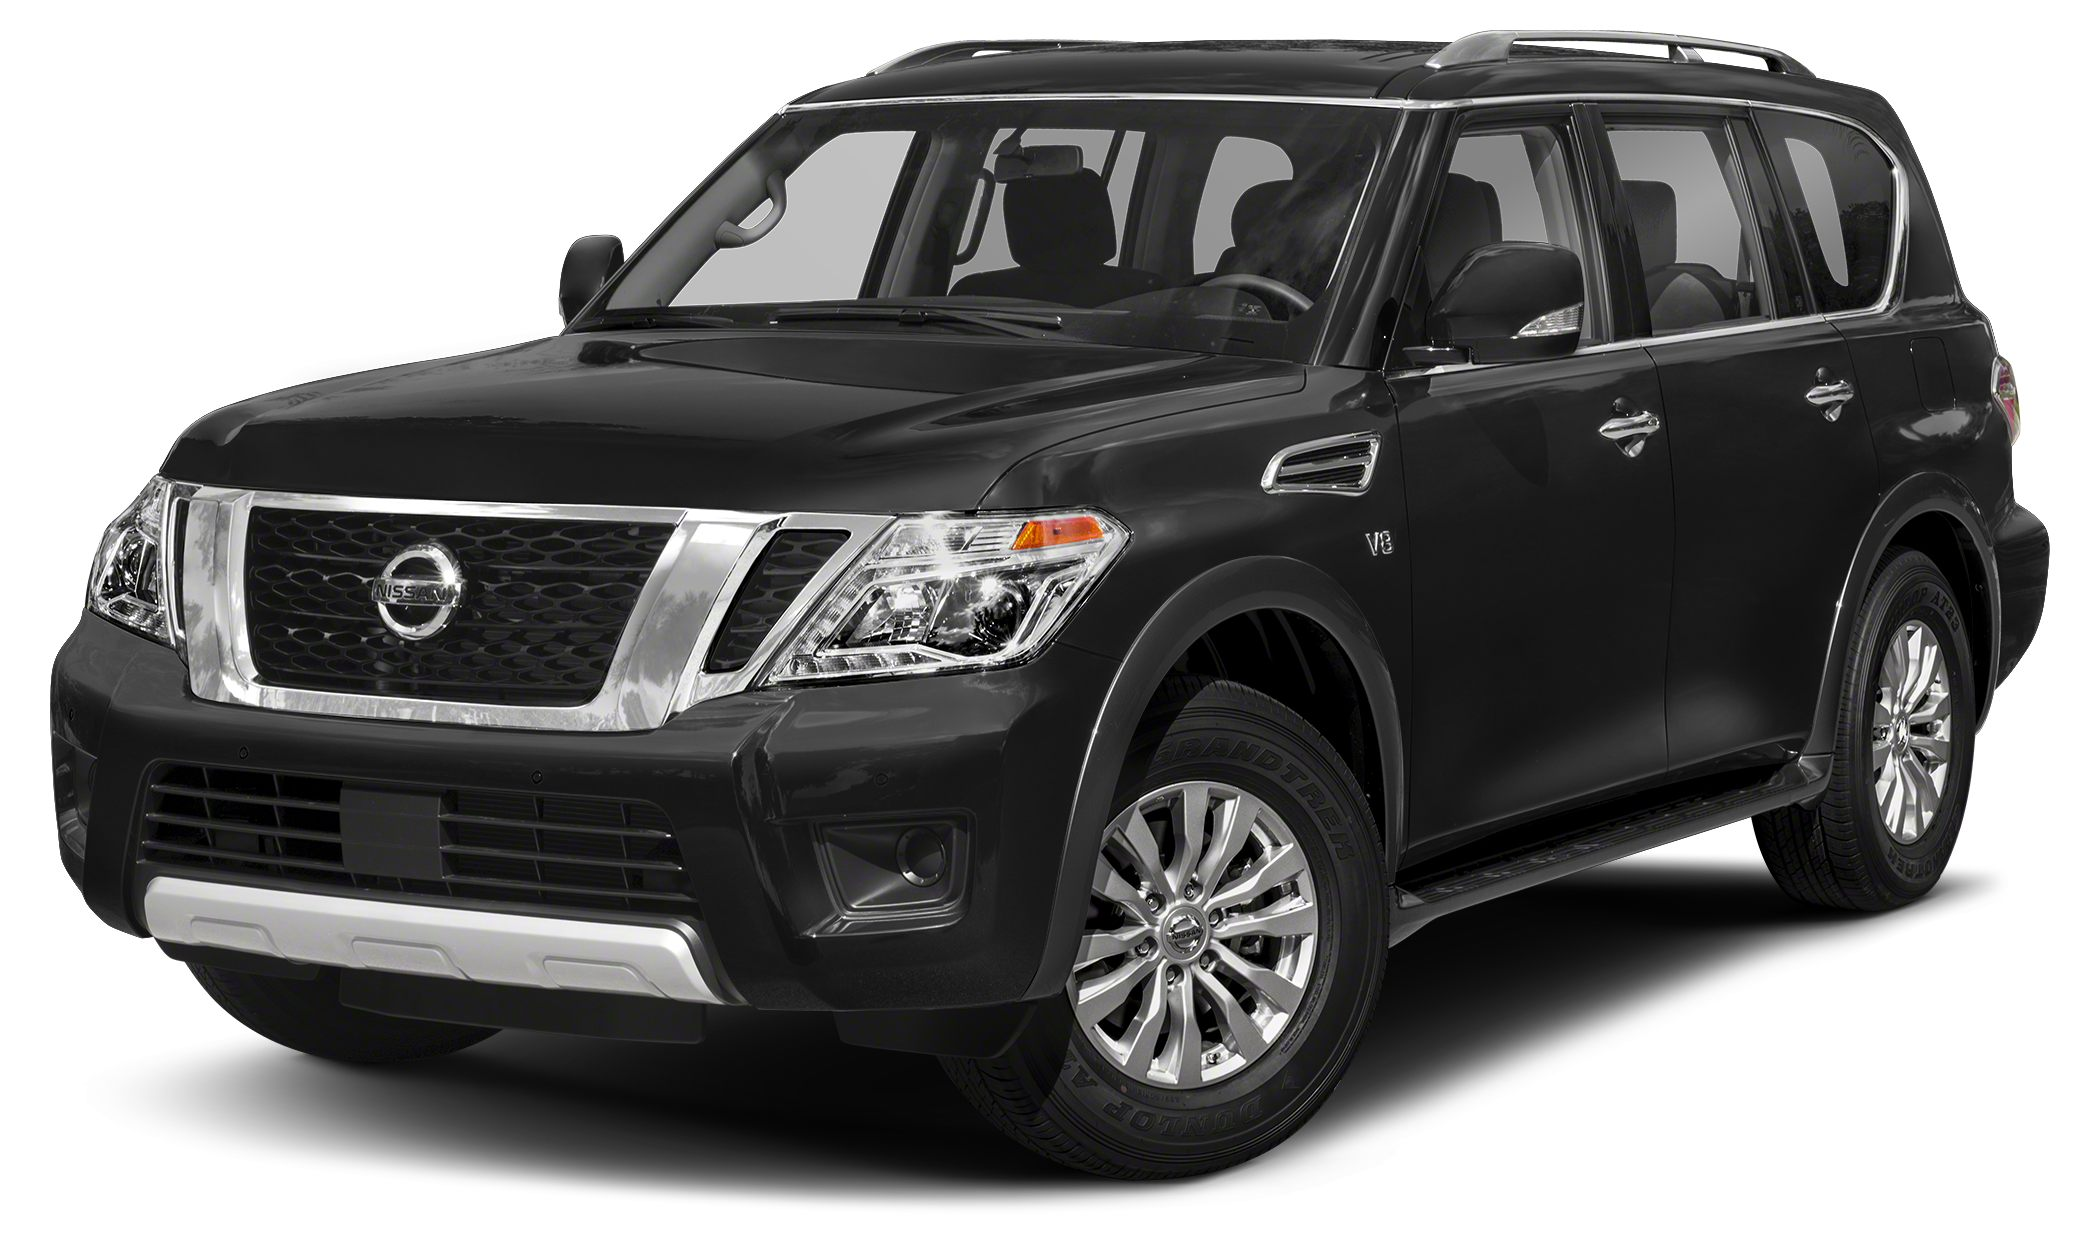 2017 Nissan Armada SV This 2017 Nissan Armada 4dr 4x2 SV features a 56L 8 CYLINDER 8cyl Gasoline